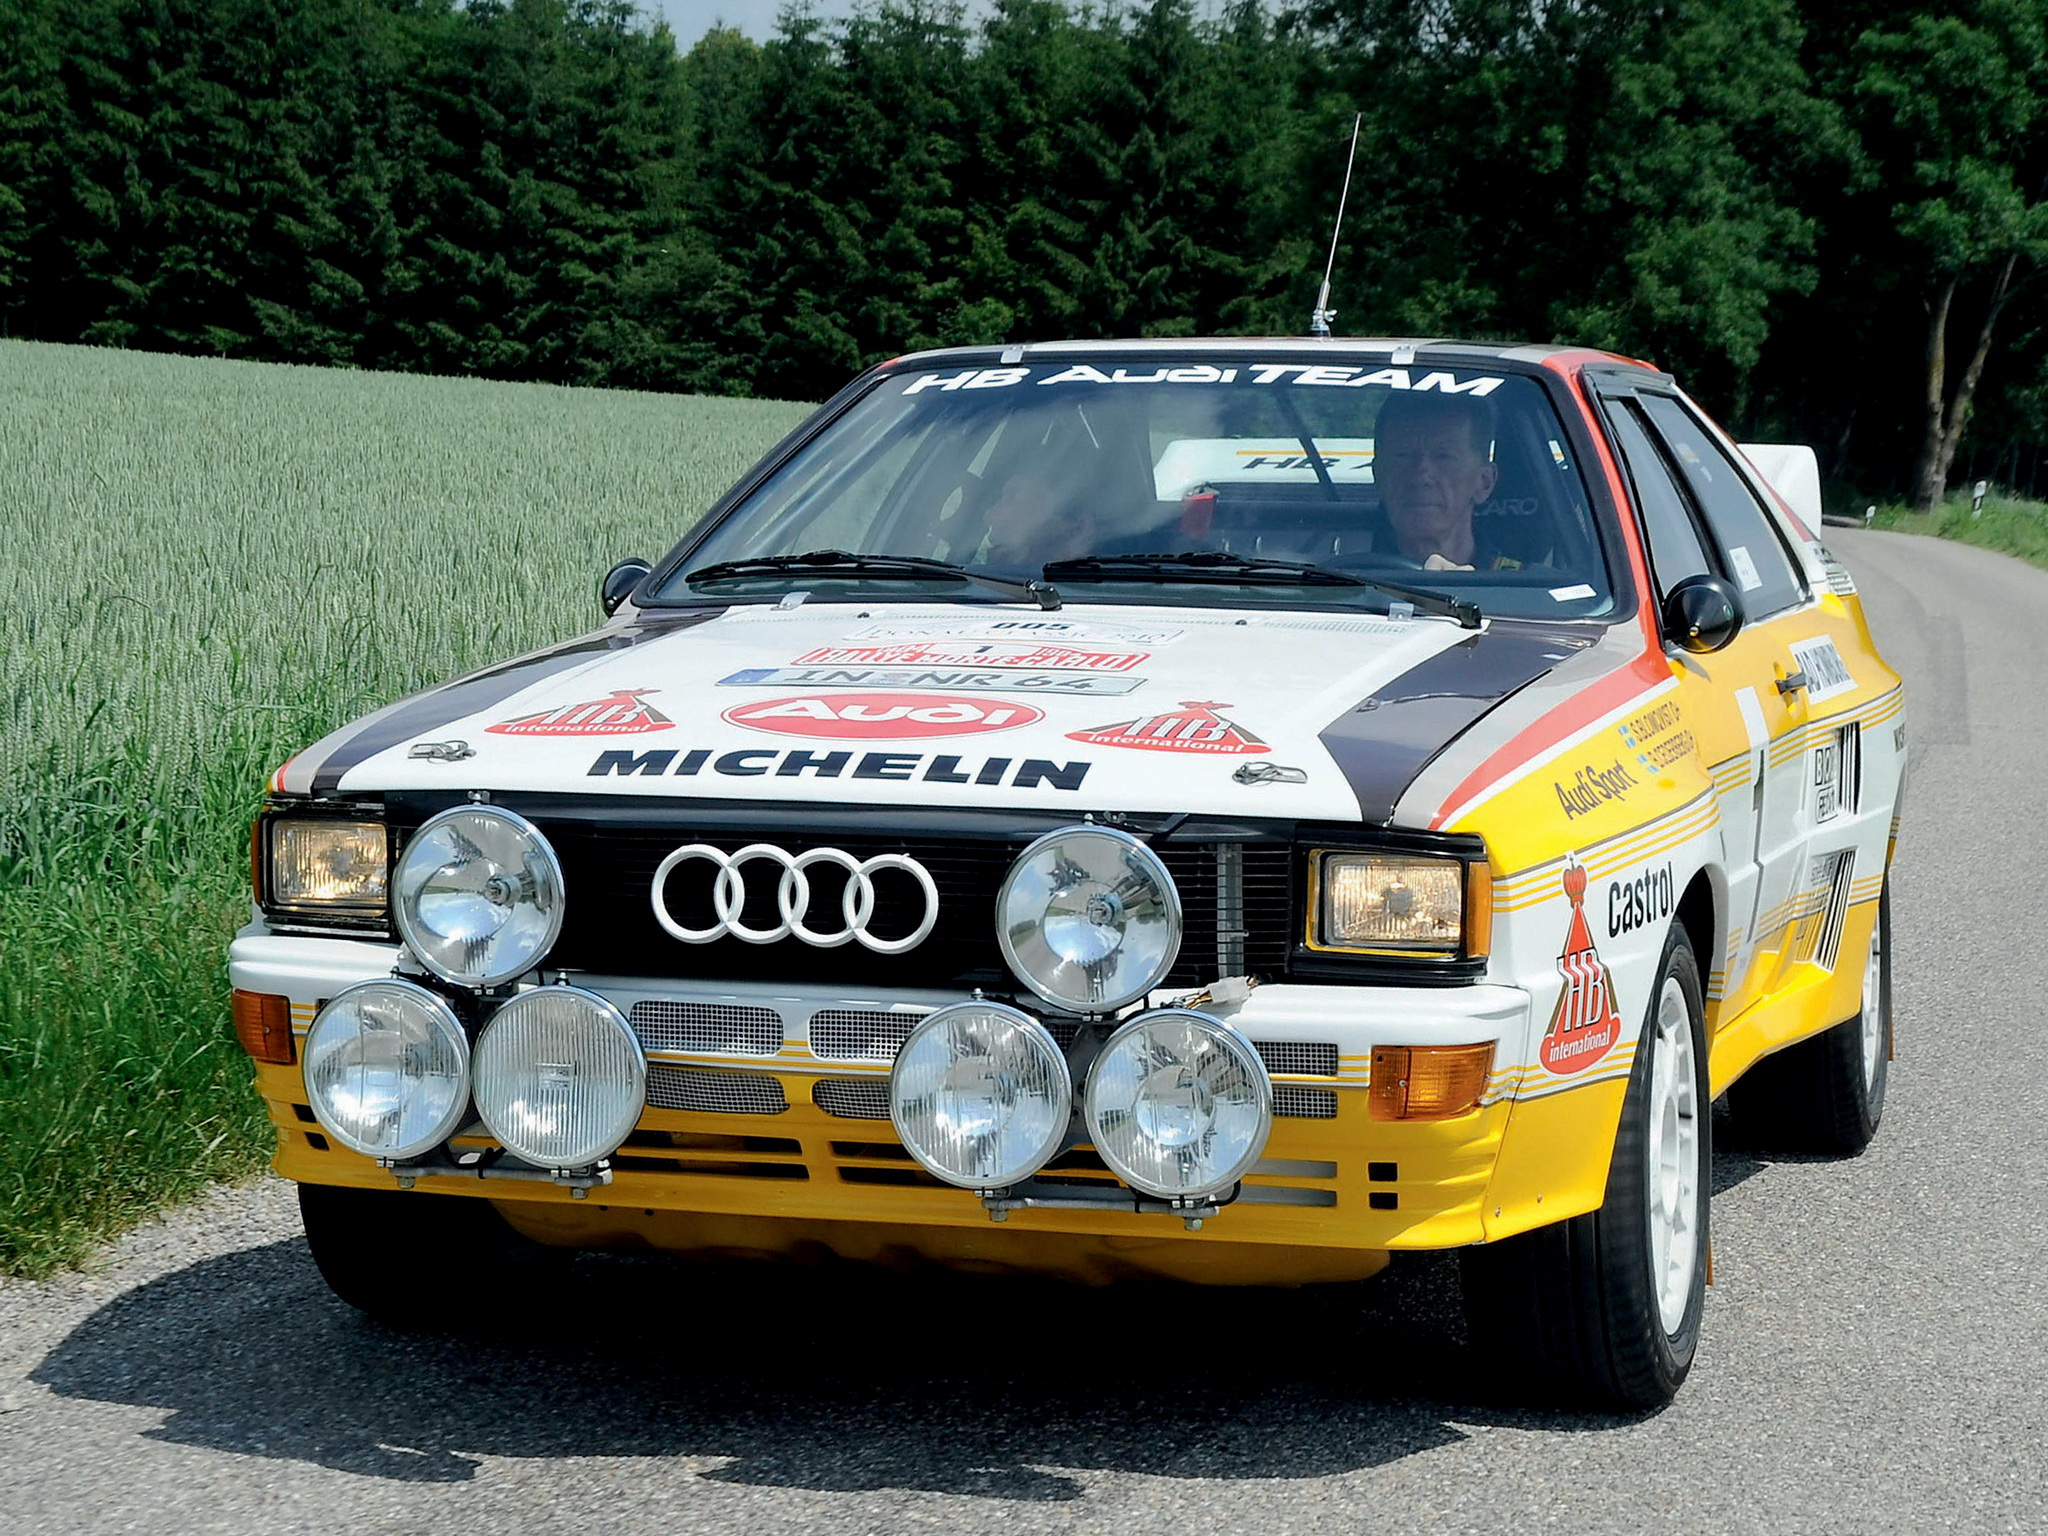 Audi Quattro Group B Rally Car Wallpapers Cool Cars Wallpaper 2048x1536